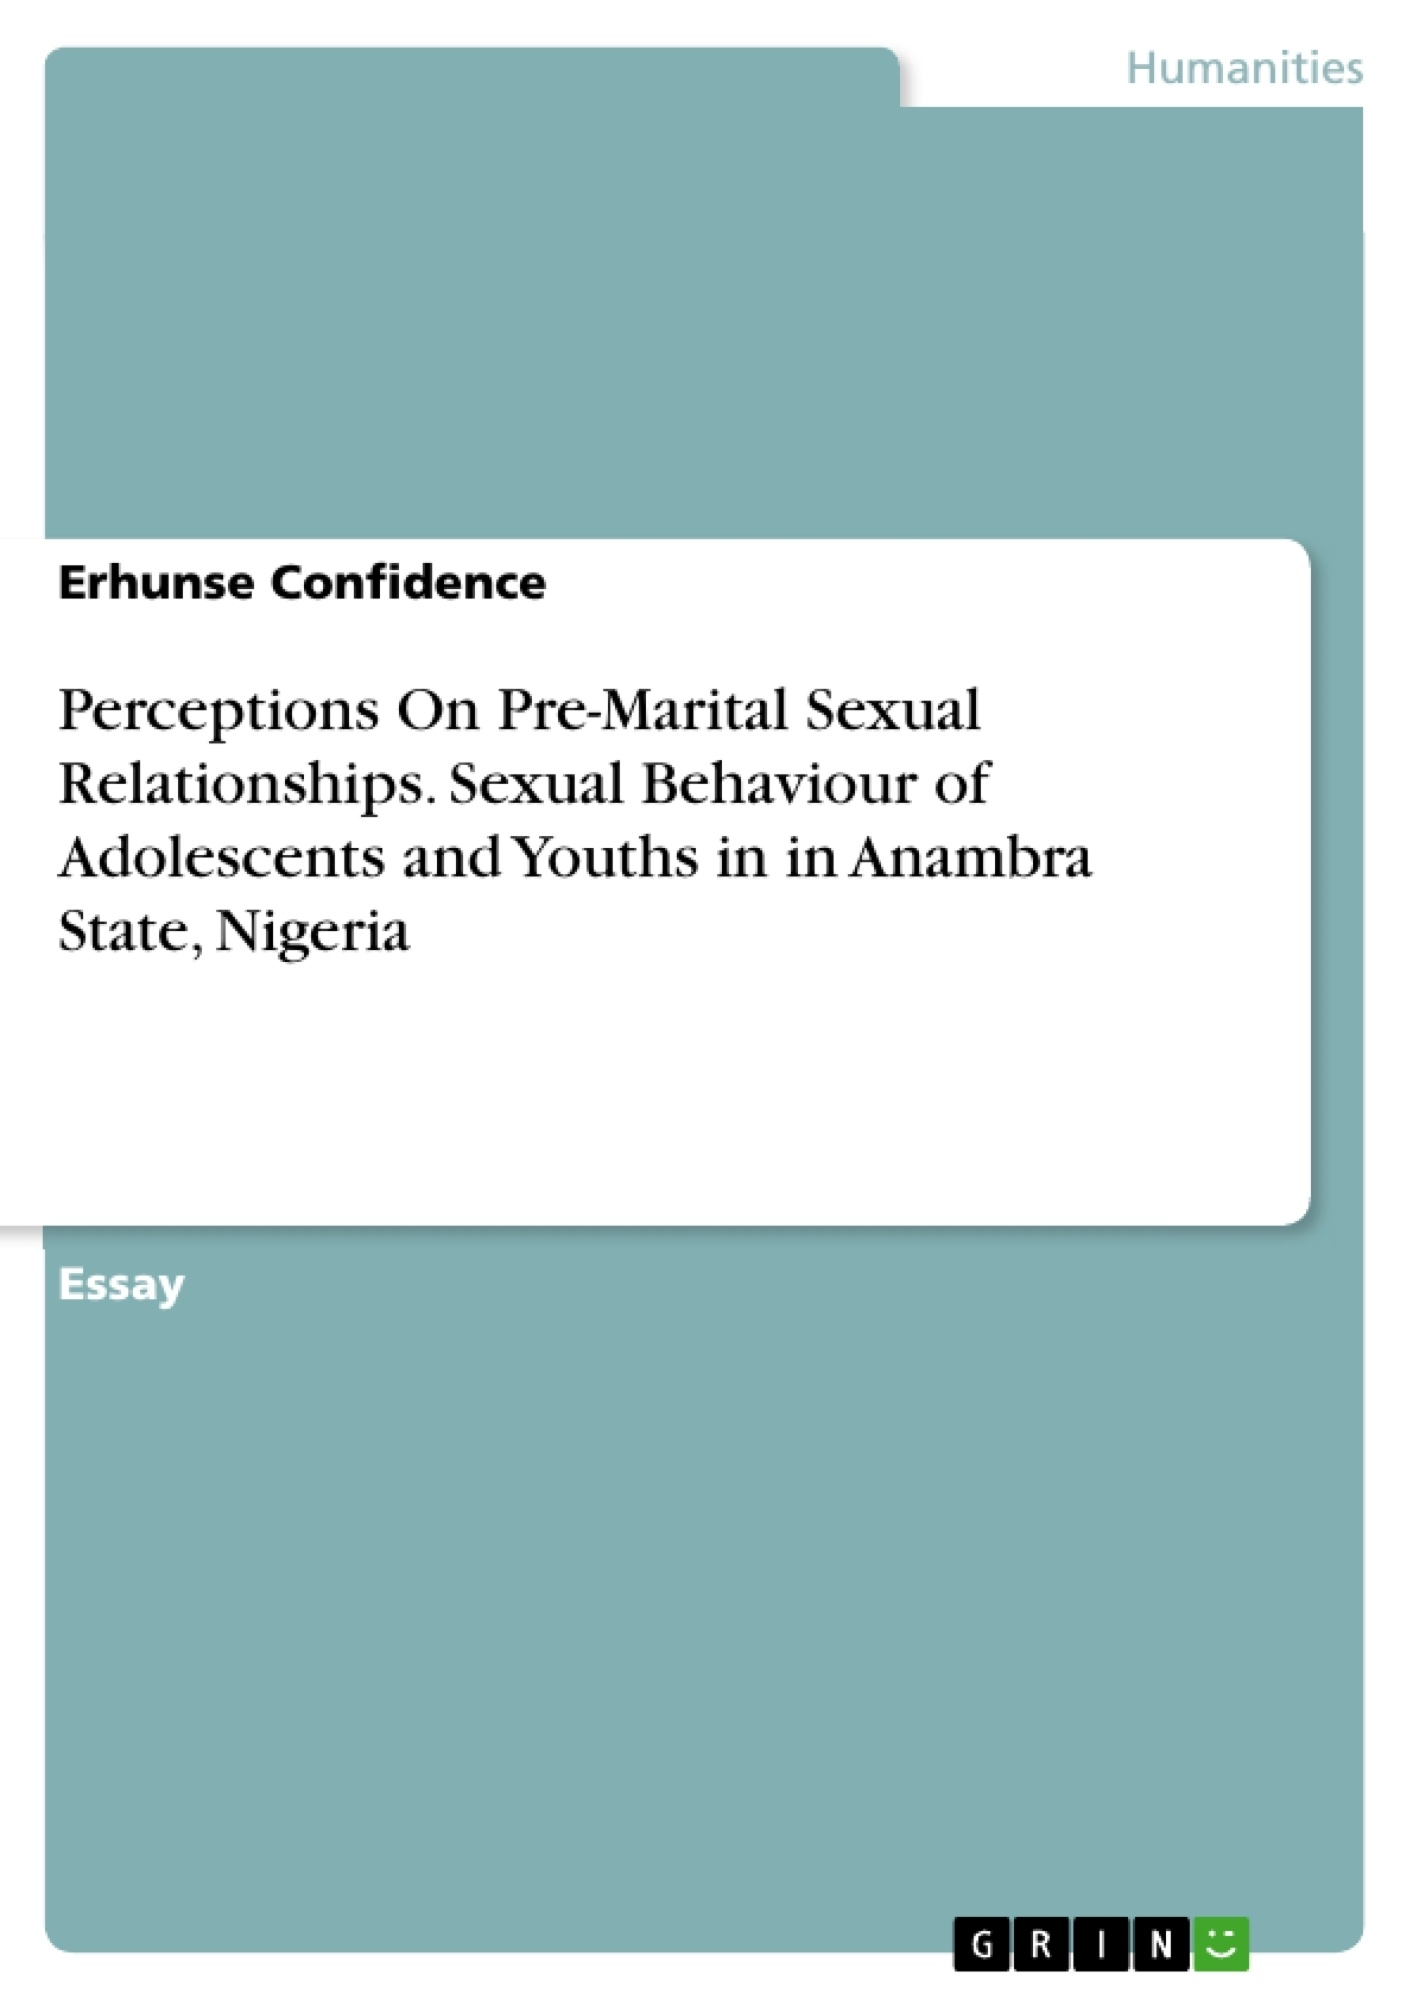 Title: Perceptions On Pre-Marital Sexual Relationships. Sexual Behaviour of Adolescents and Youths in  in Anambra State, Nigeria